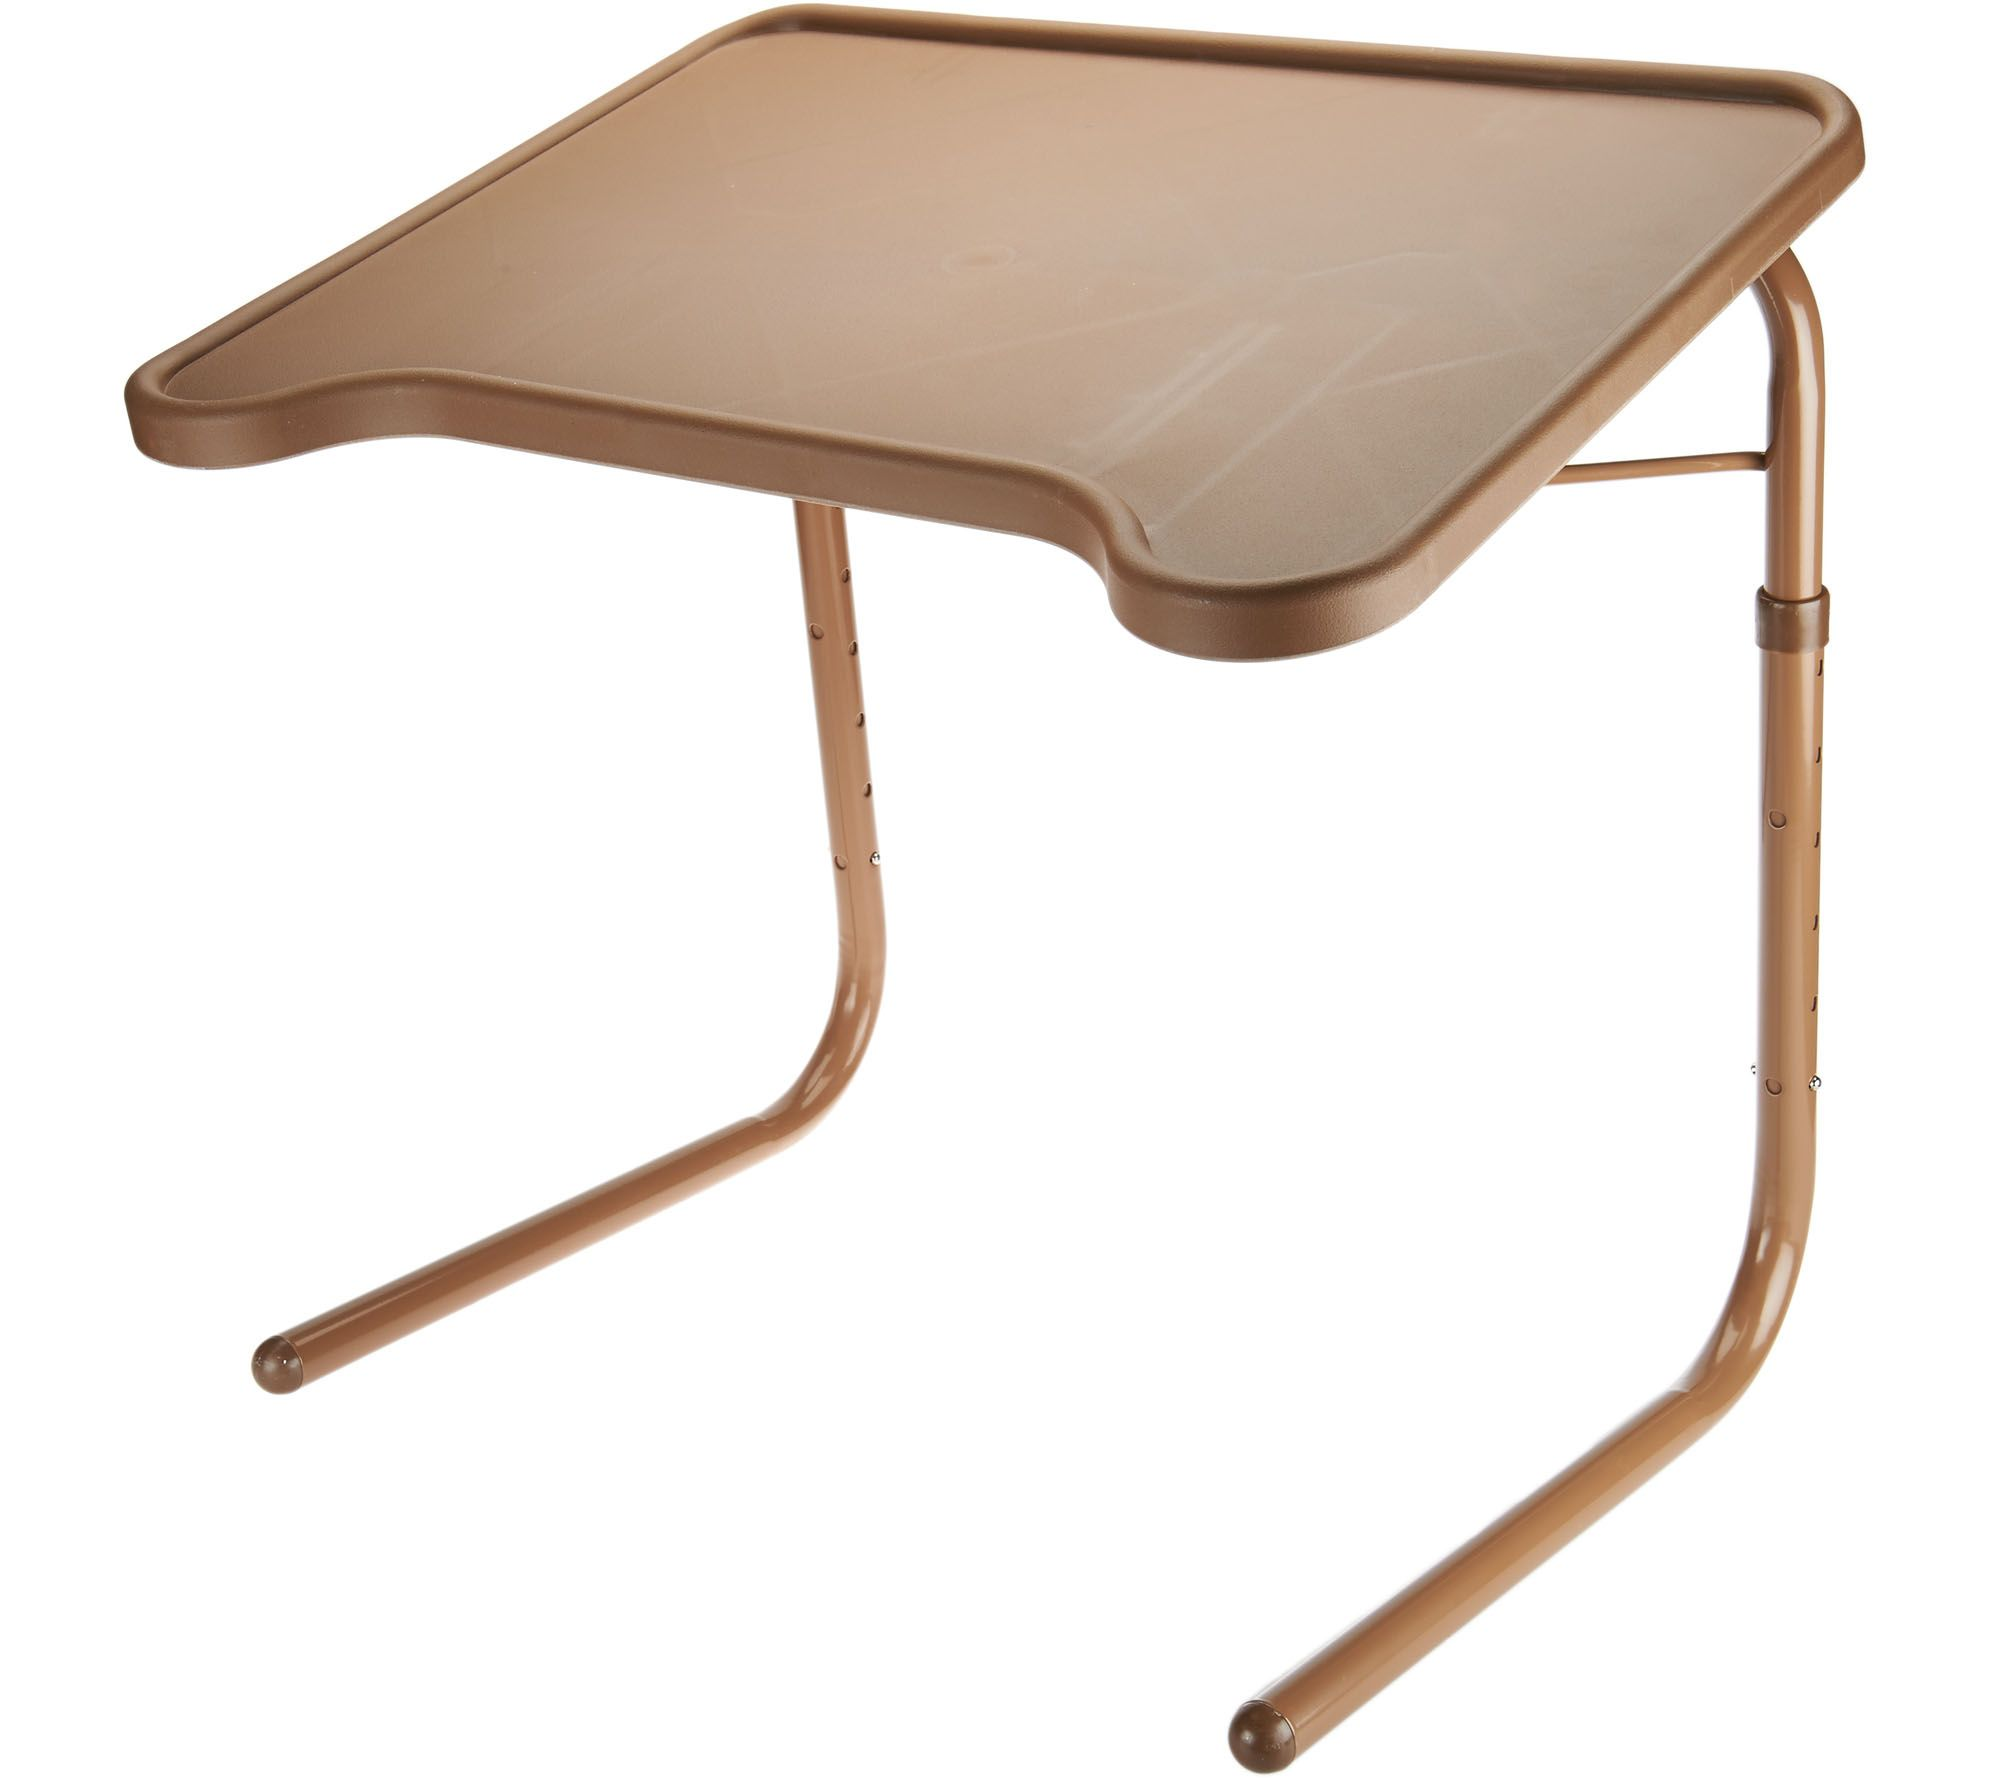 office chair qvc winnie the pooh desk table mate classic multipurpose adjustable folding